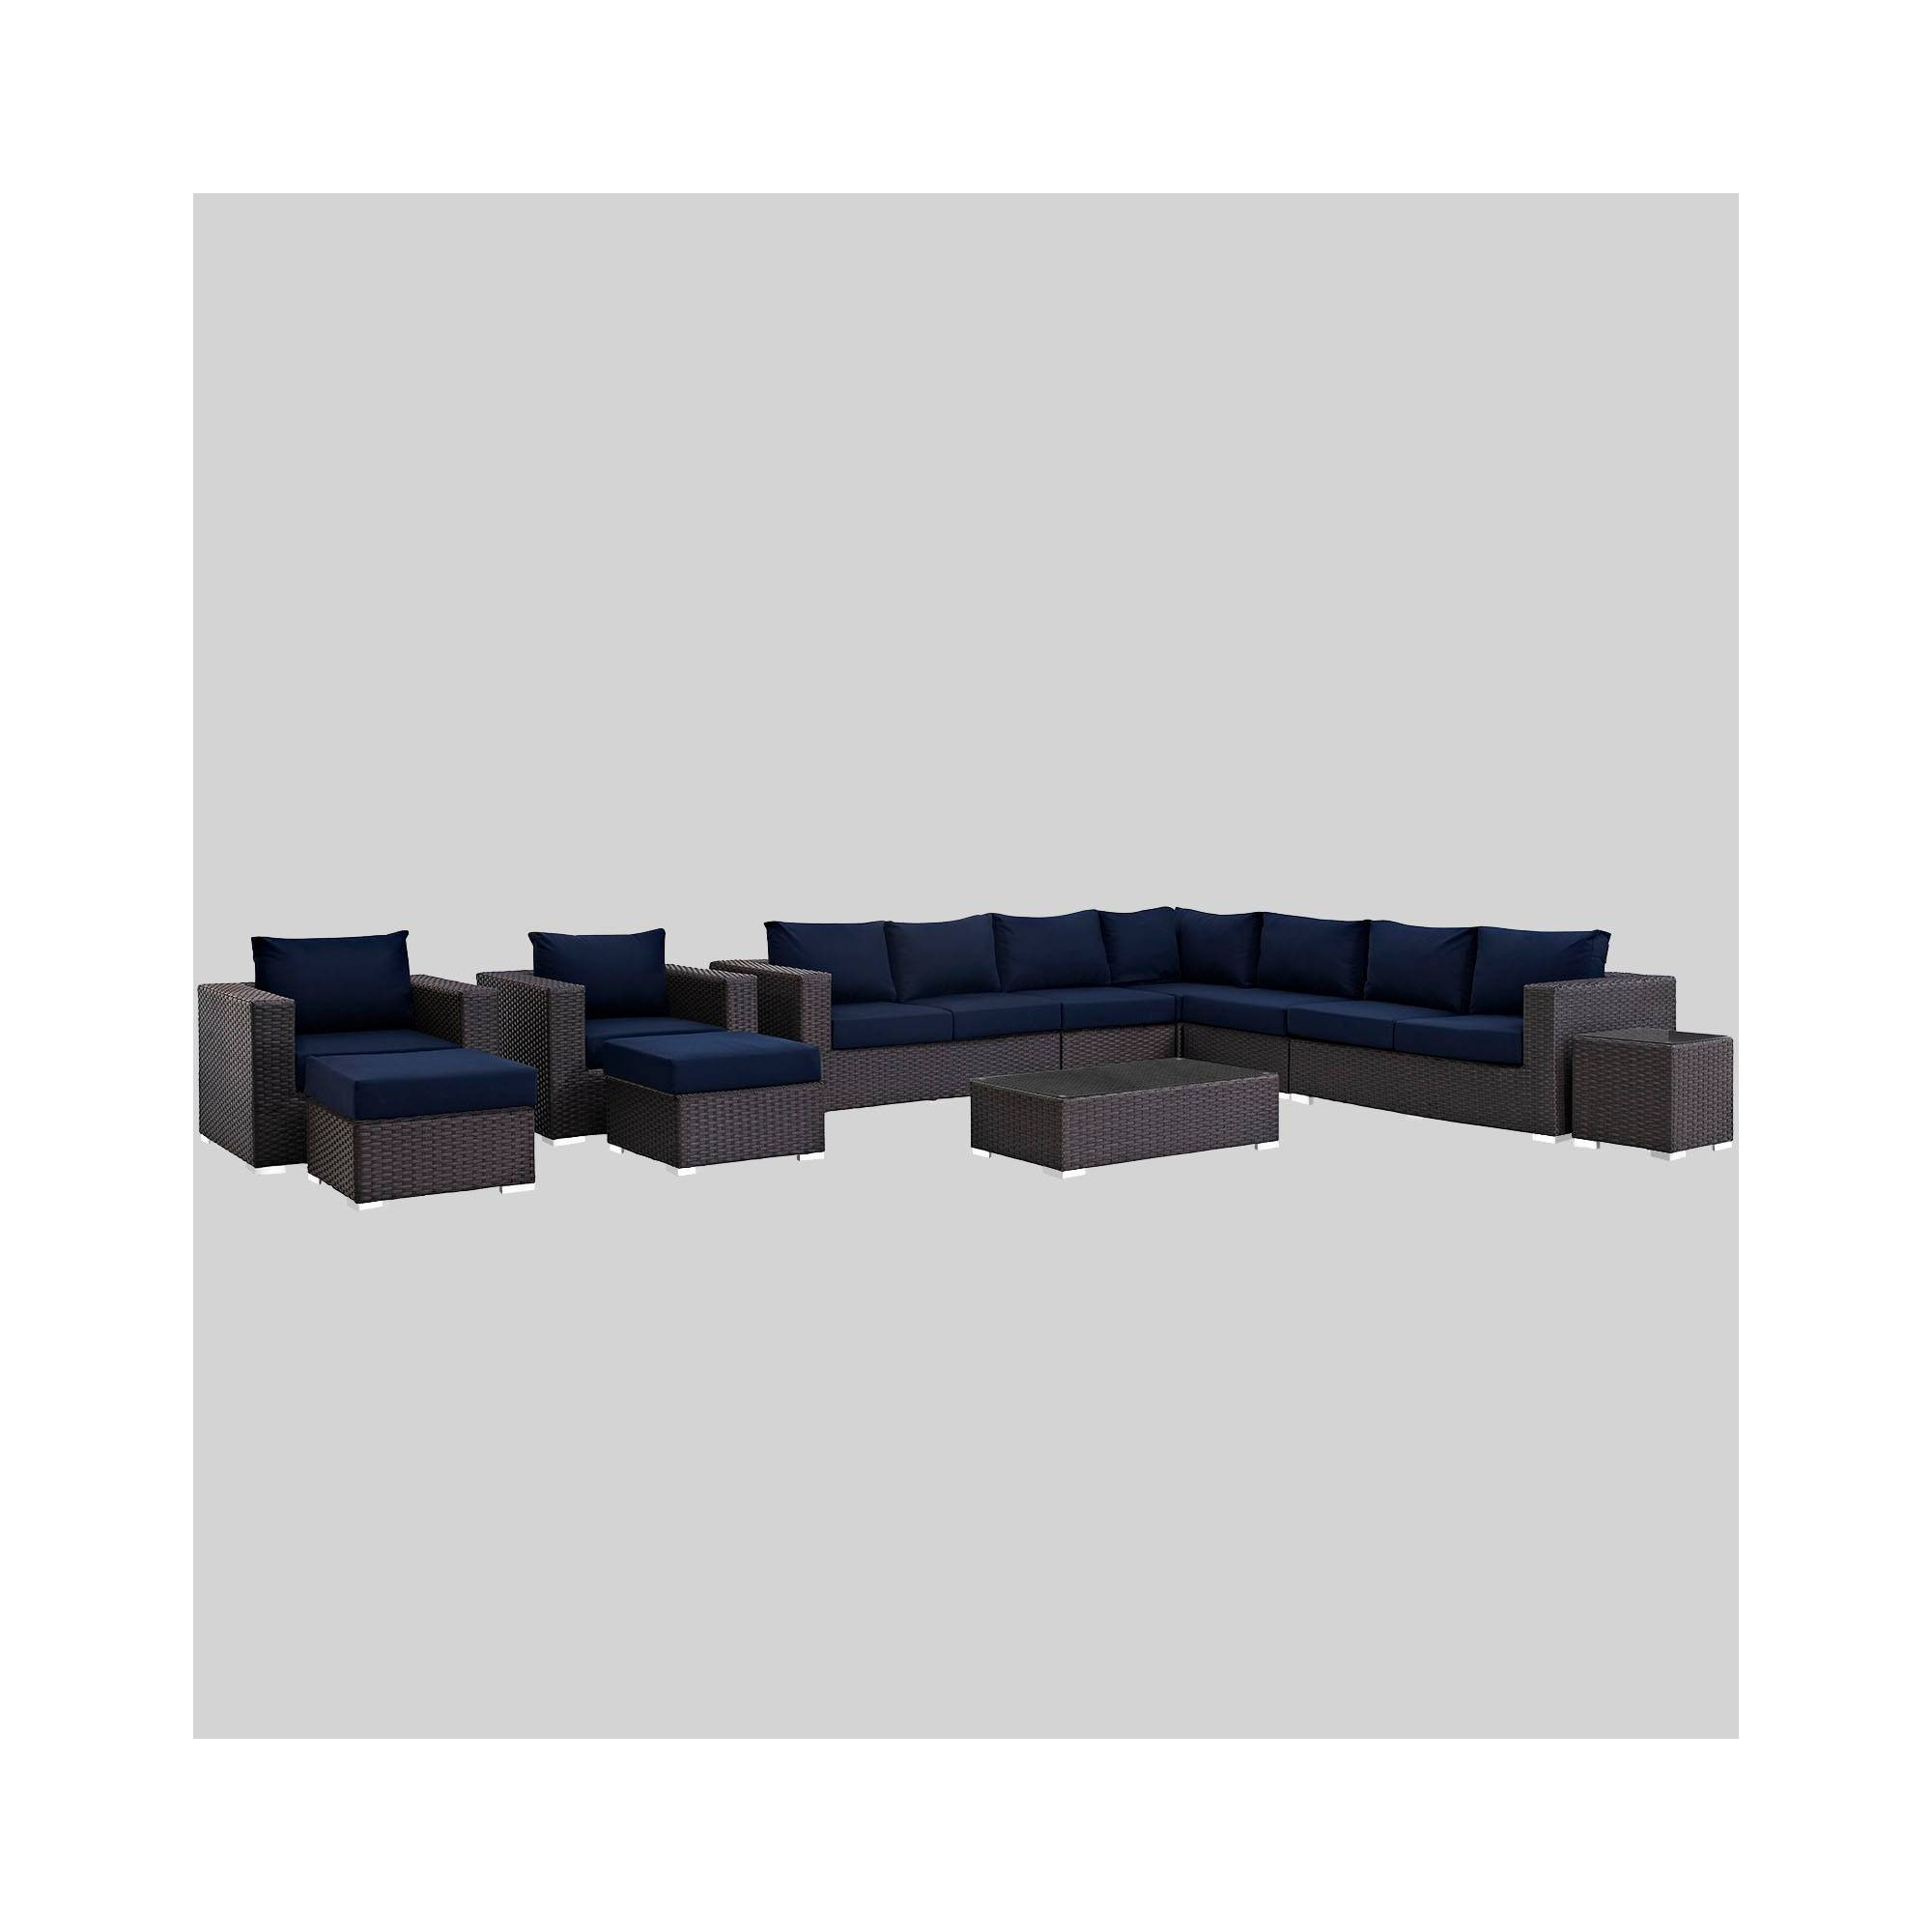 Sojourn 11pc Outdoor Patio Sectional Set with Sunbrella Fabric - Navy (Blue) - Modway